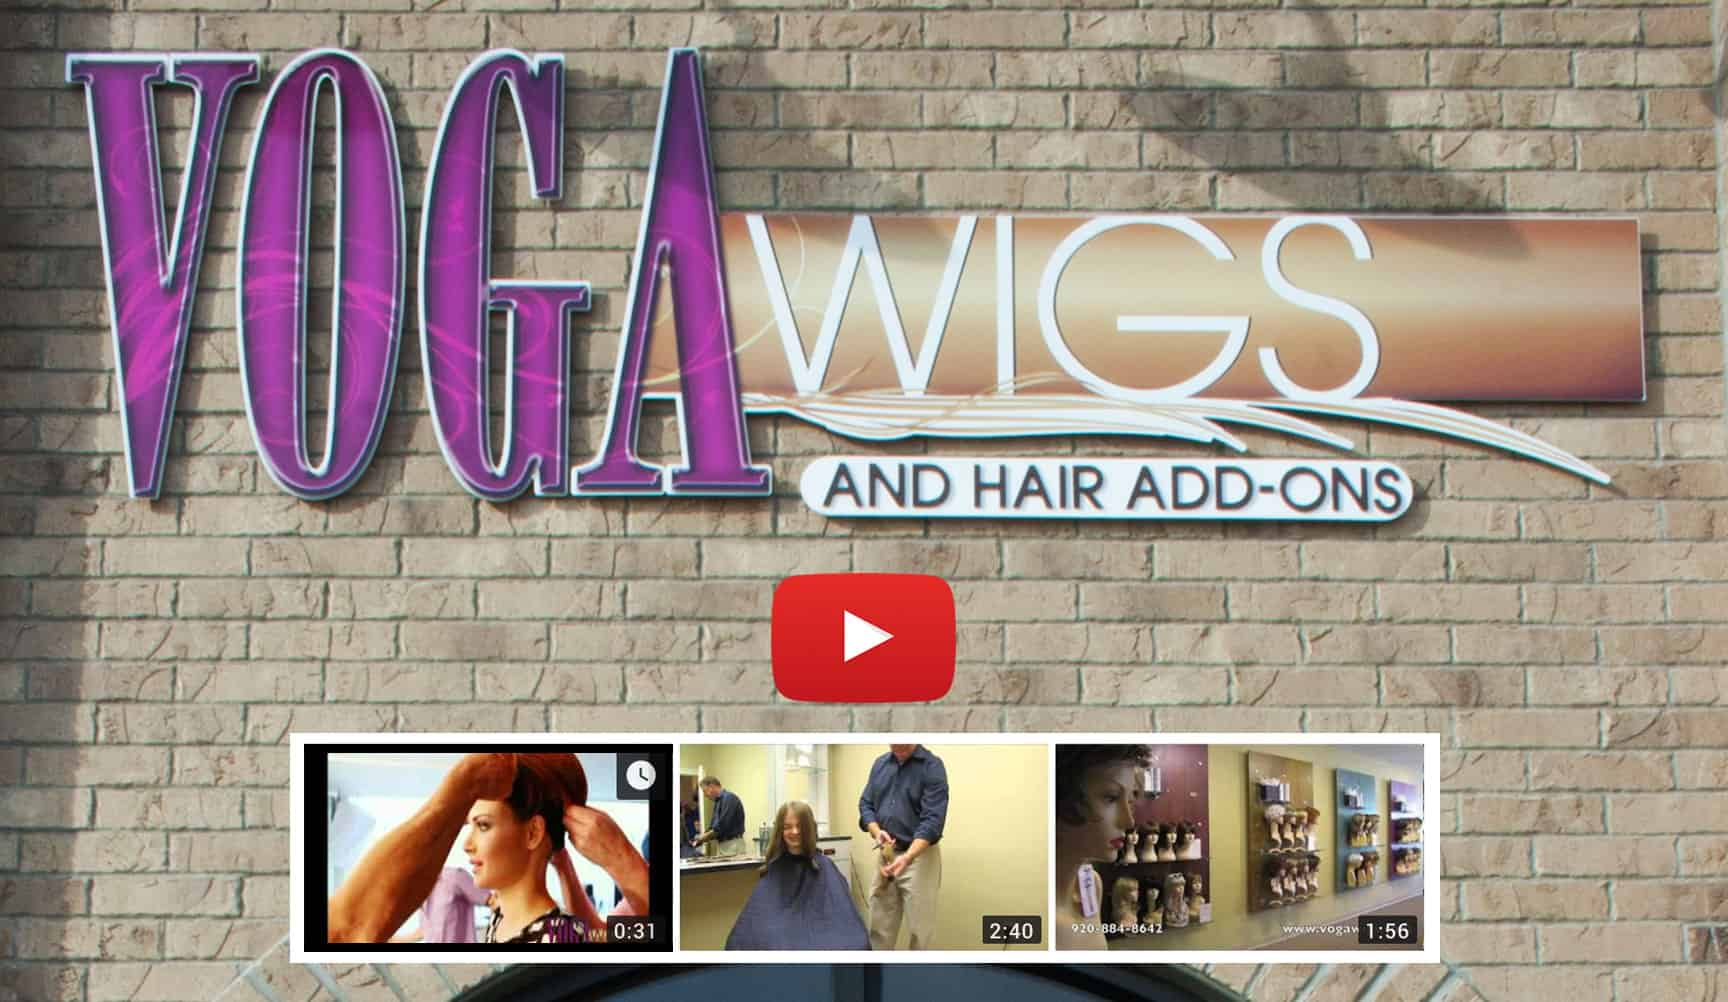 voga-wigs-and-hair-add-ons-youtube-banner